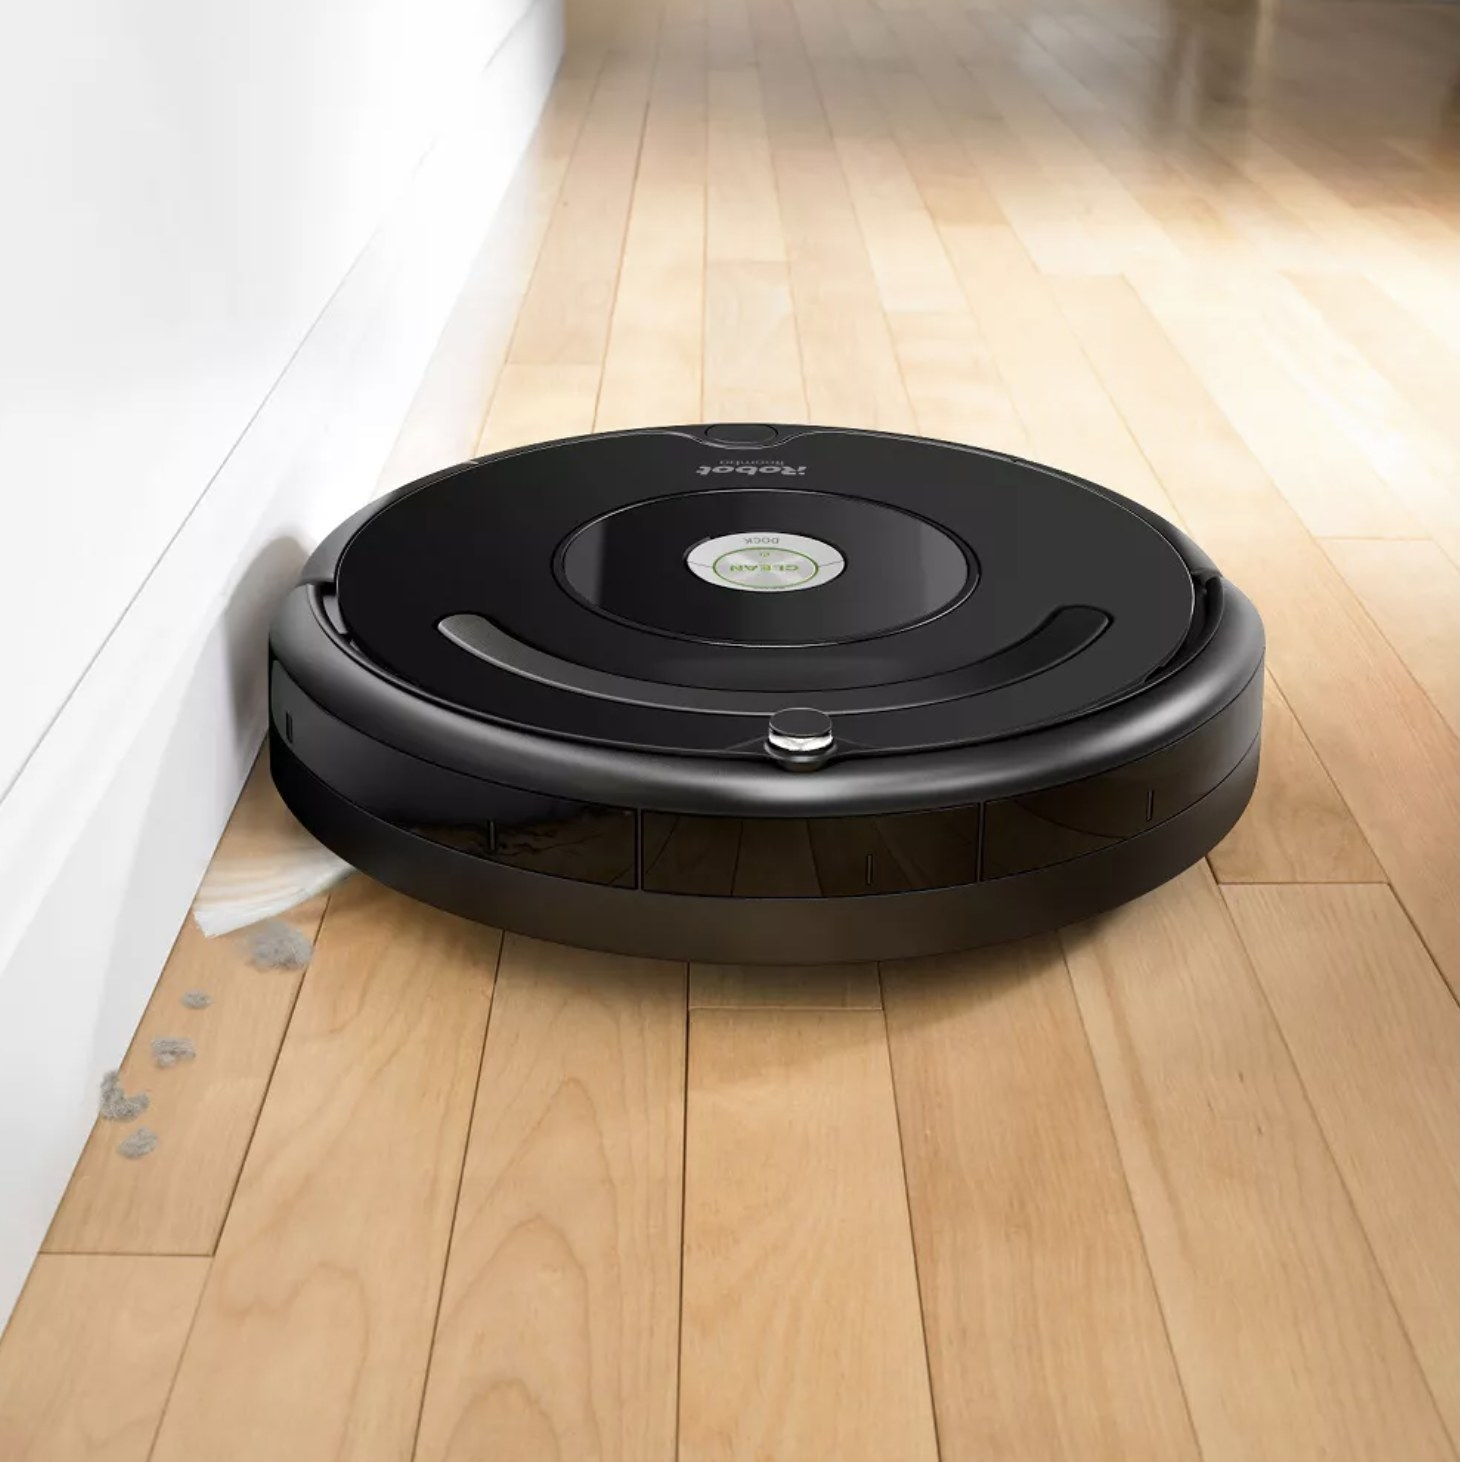 The robot vacuum cleaning dust from the edge of a wall